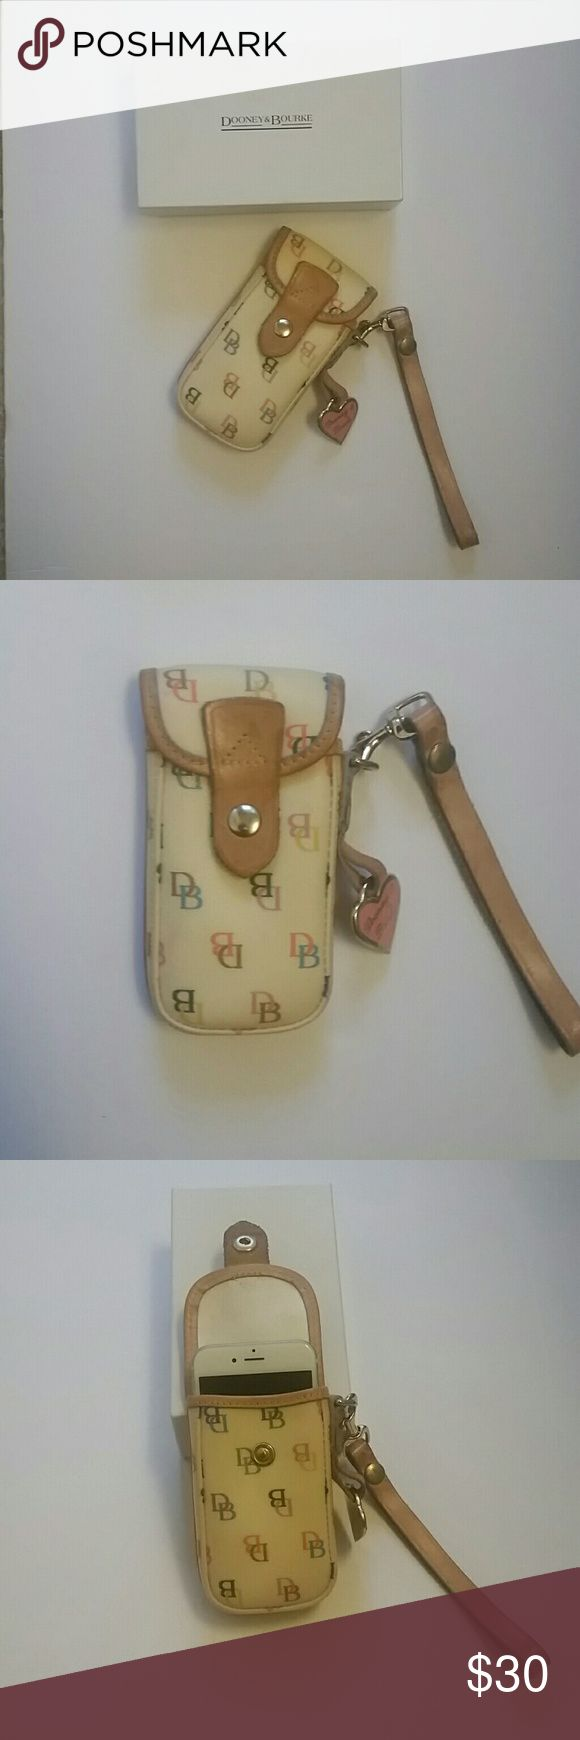 """Dooney & Bourke cellphone wristlet Dooney and Bourke cell phone wristlet.  Currently has iPhone 6s in photo but also fits phones of similar size.  Also, has back pocket for cash or credit cards. Made with genuine leather and monogram coated canvas. Can also be used as cosmetic bag, etc.  Length 5.5"""", width 3"""",  depth 1.25"""".  Excellent condition.  Comes with original box.  Cell phone not included. Dooney & Bourke Bags Clutches & Wristlets"""